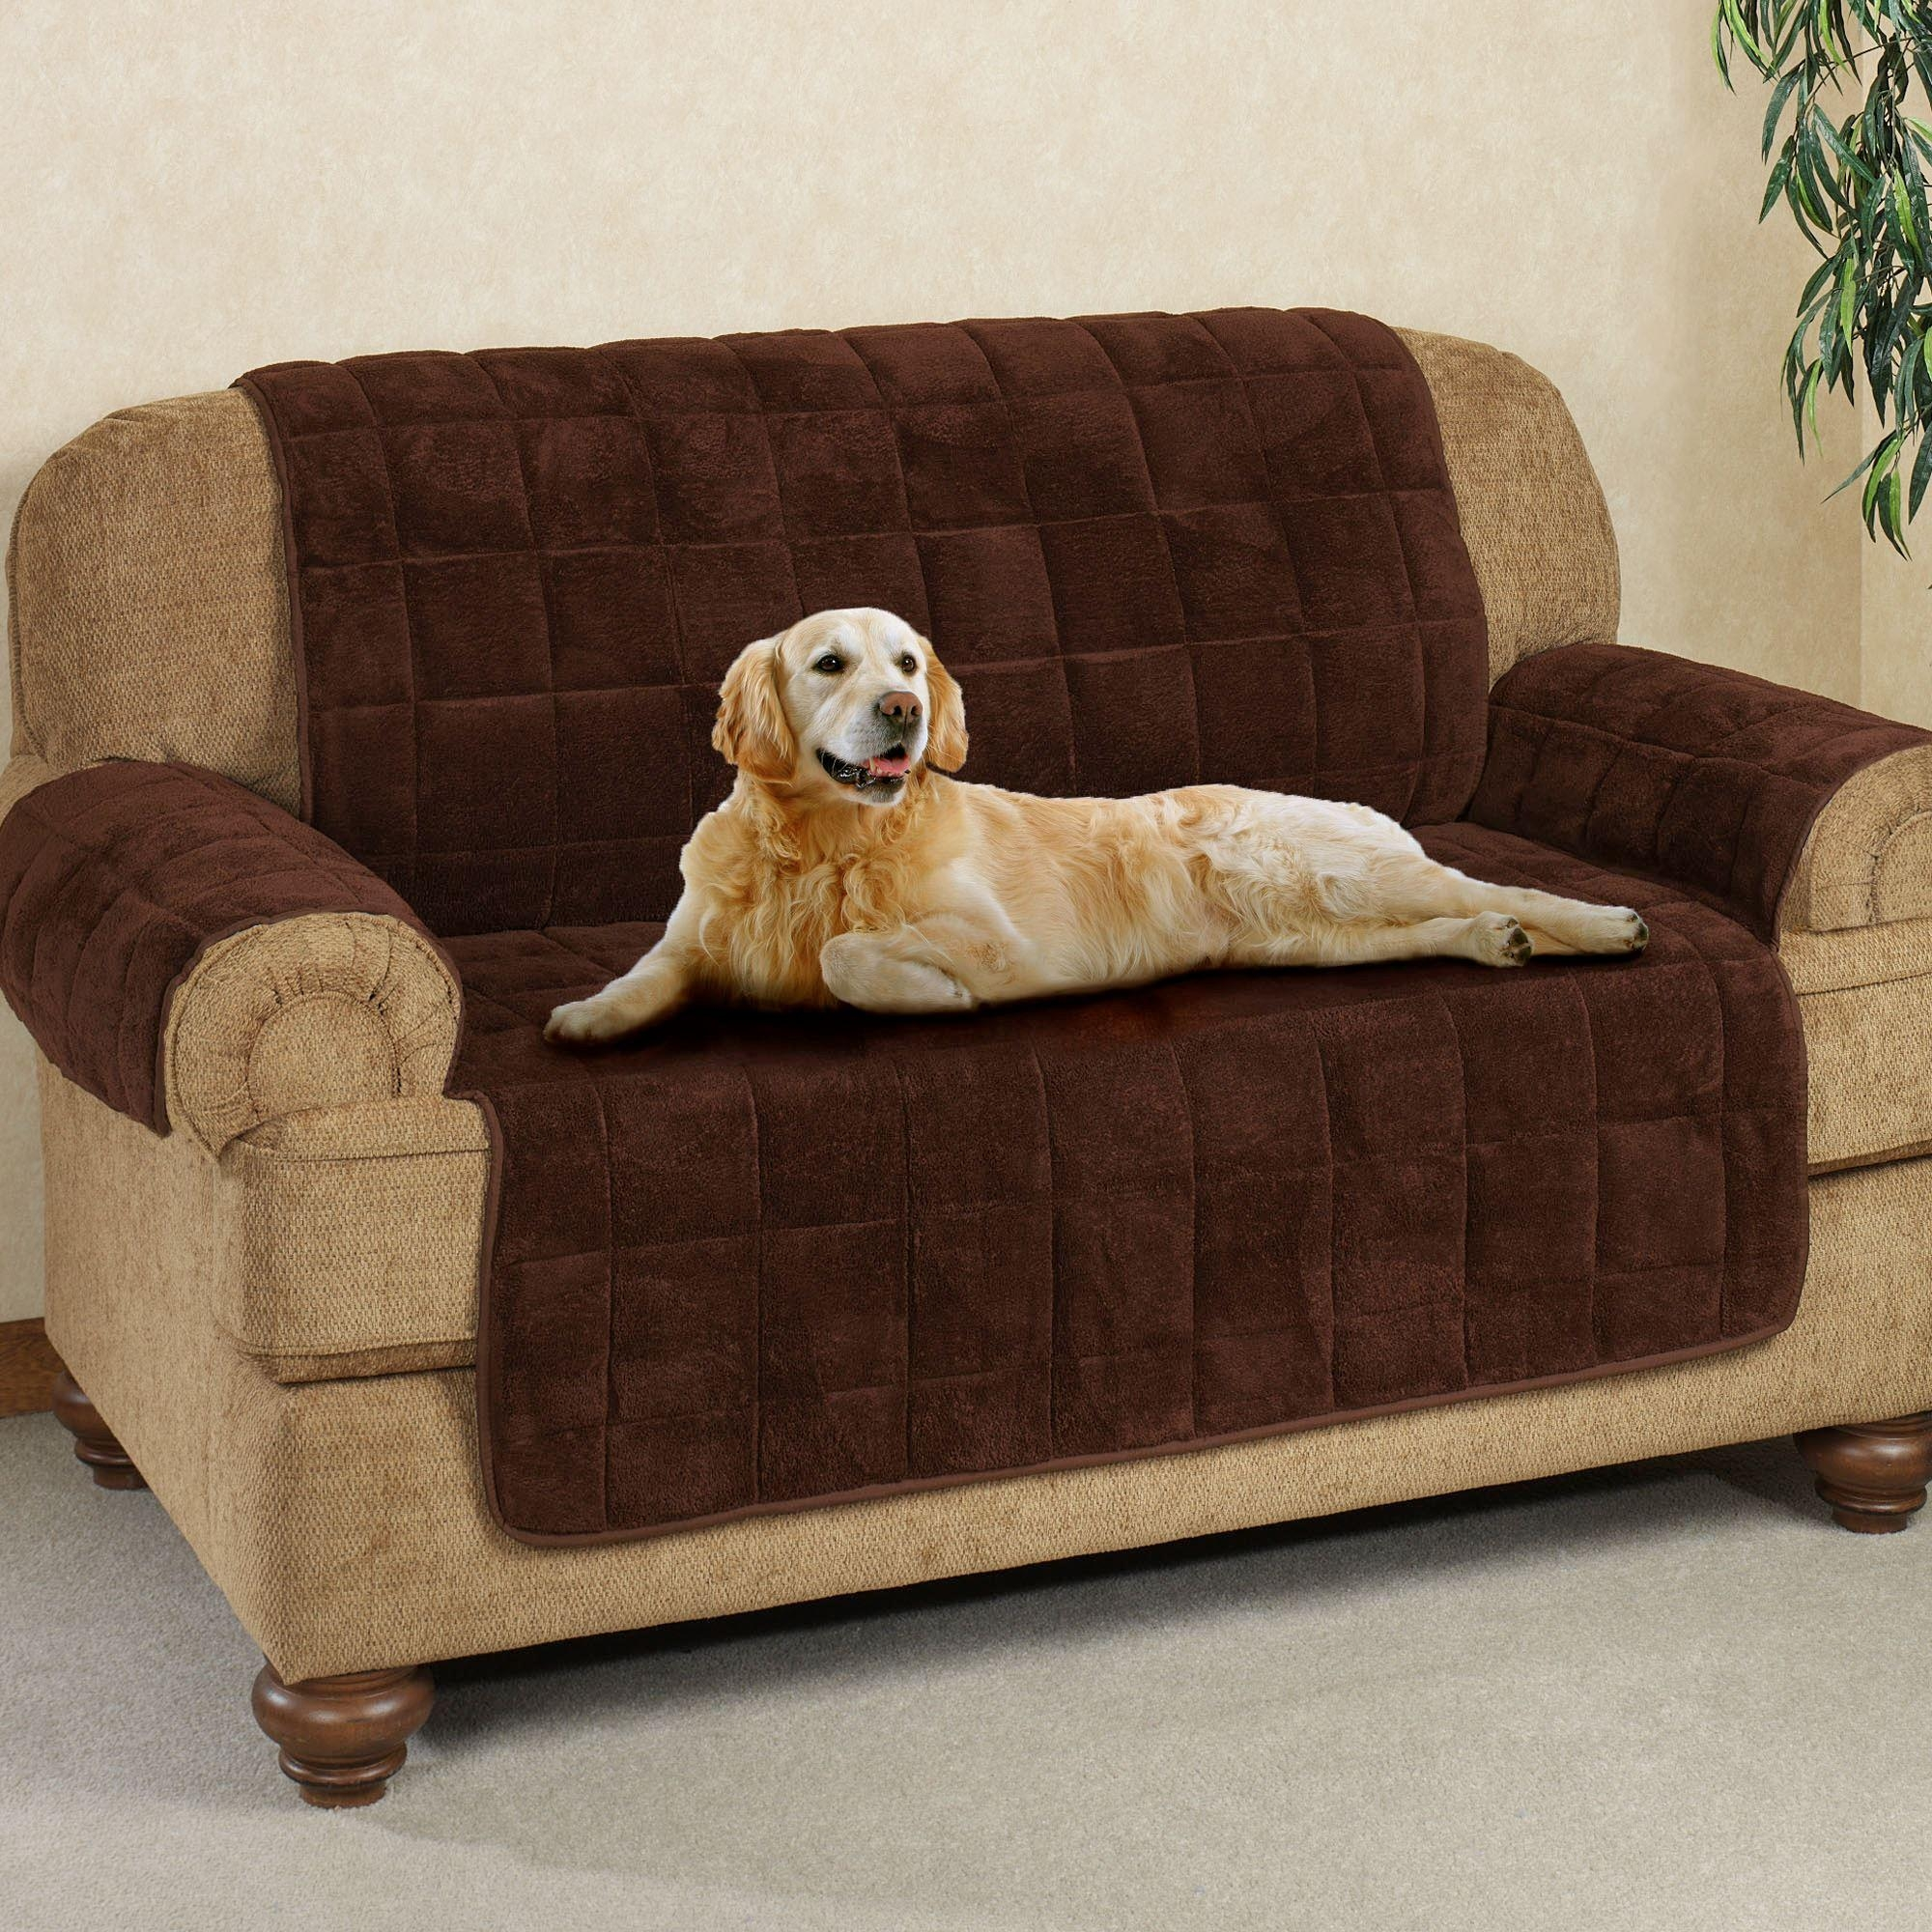 Furniture Covers, Pet Covers, Furniture Protectors | Touch Of Class Throughout Dog Sofas And Chairs (View 8 of 20)